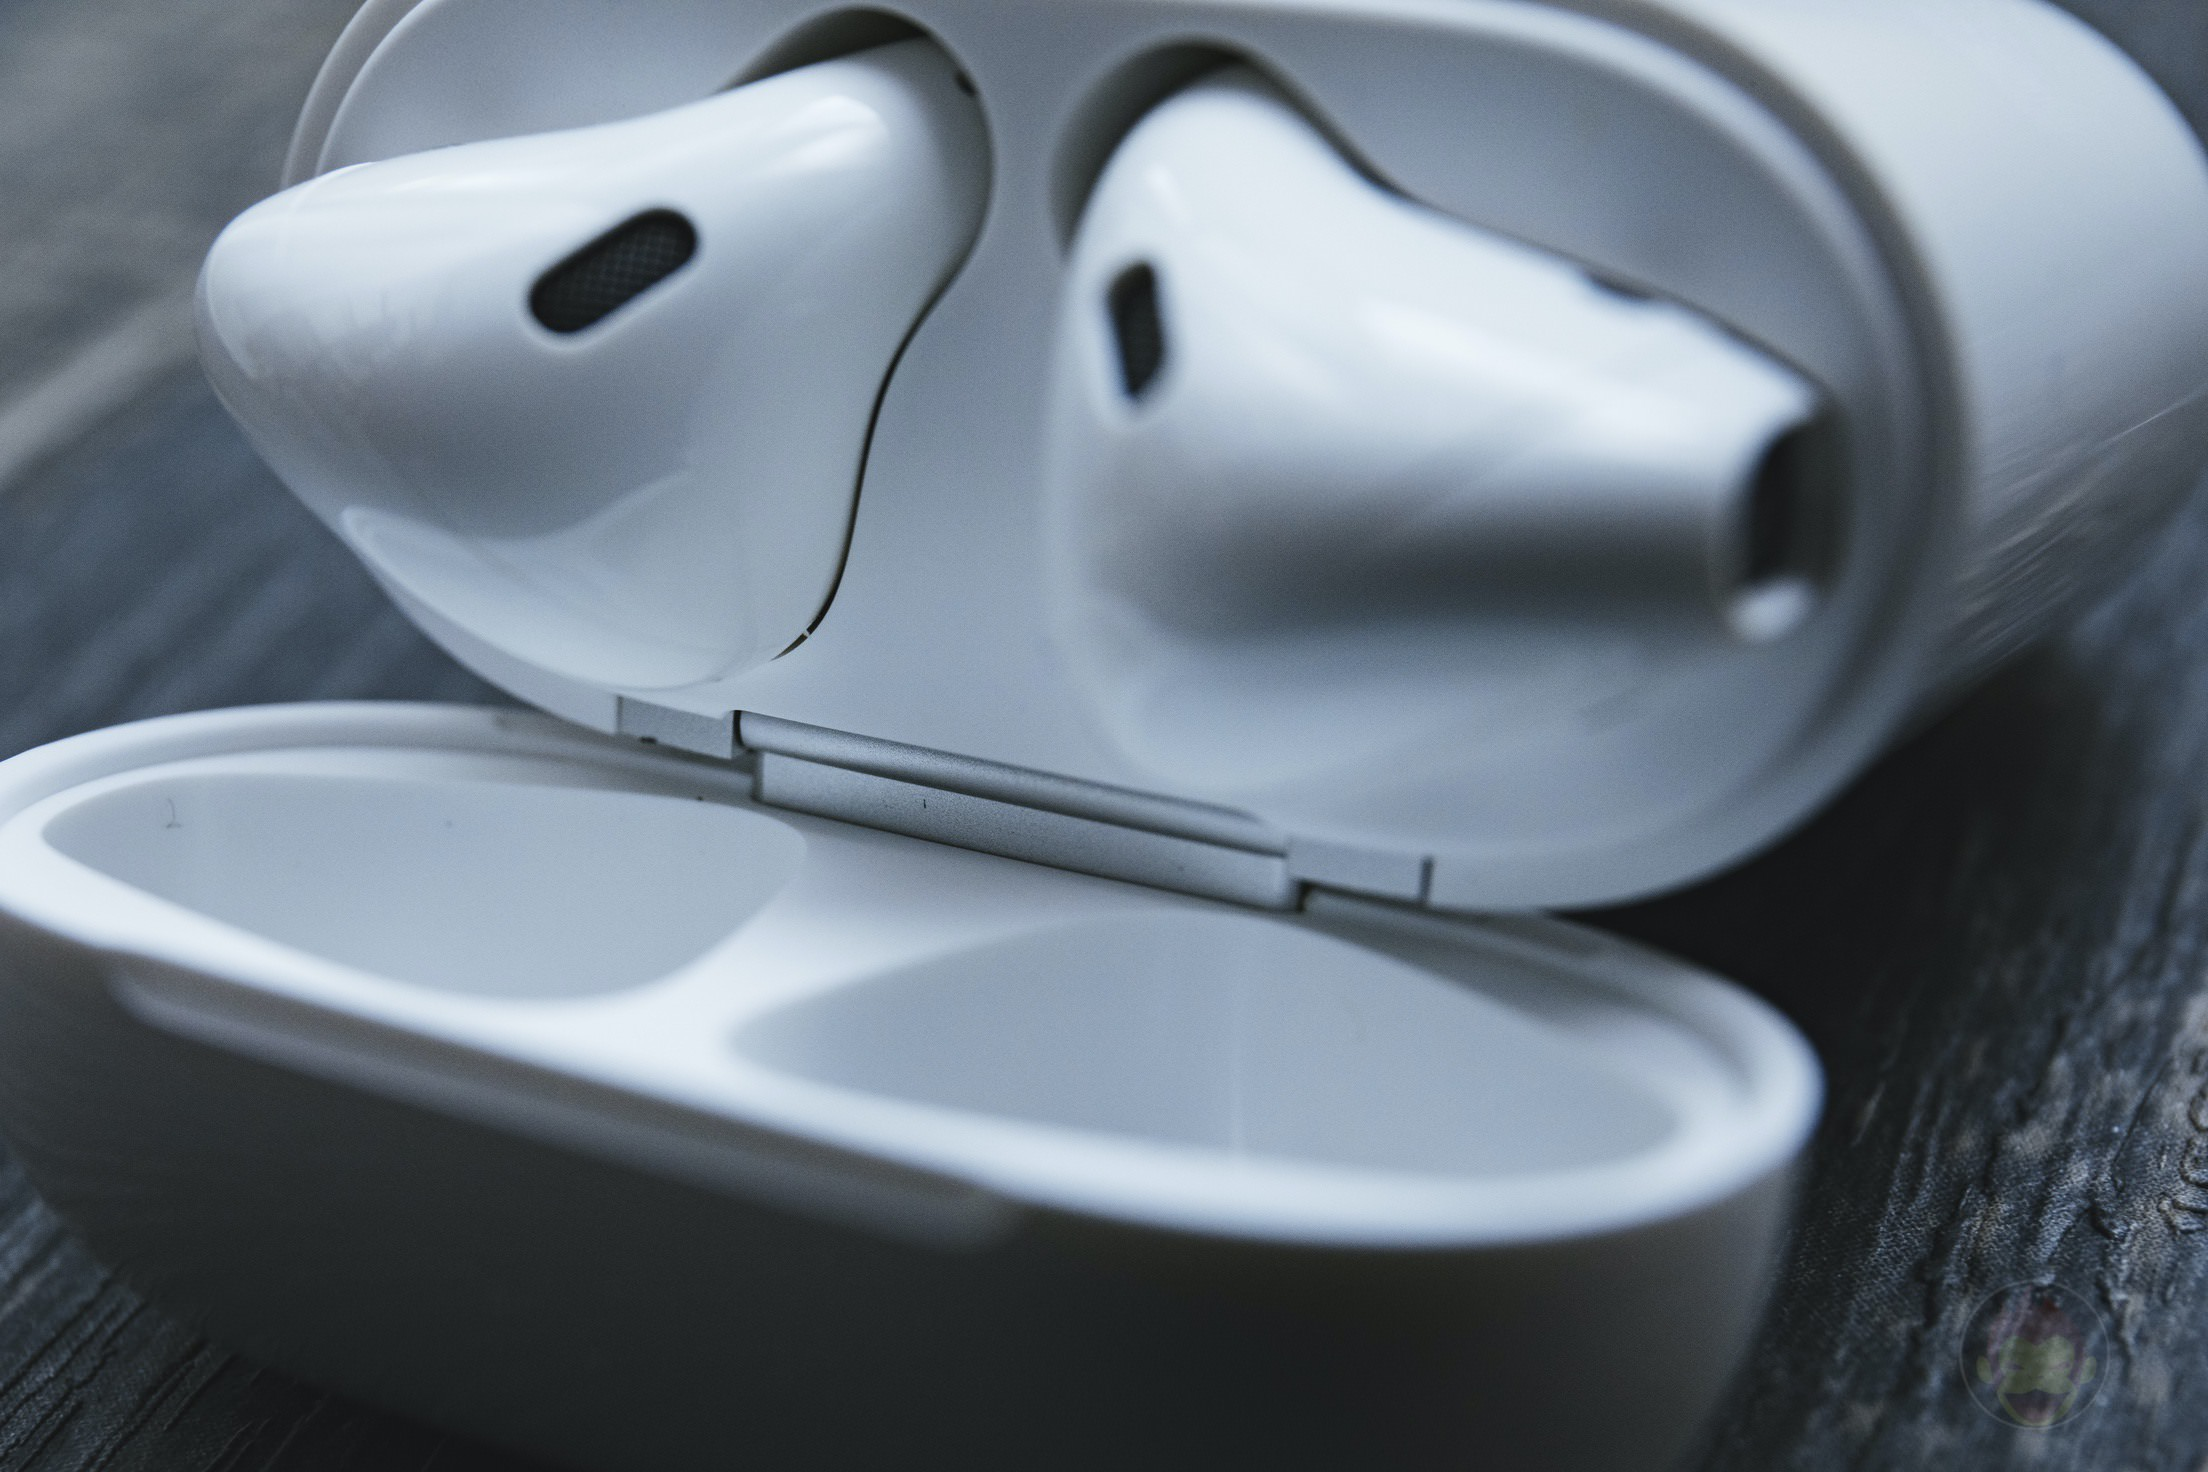 AirPods-2nd-Generation-2019-Review-13.jpg